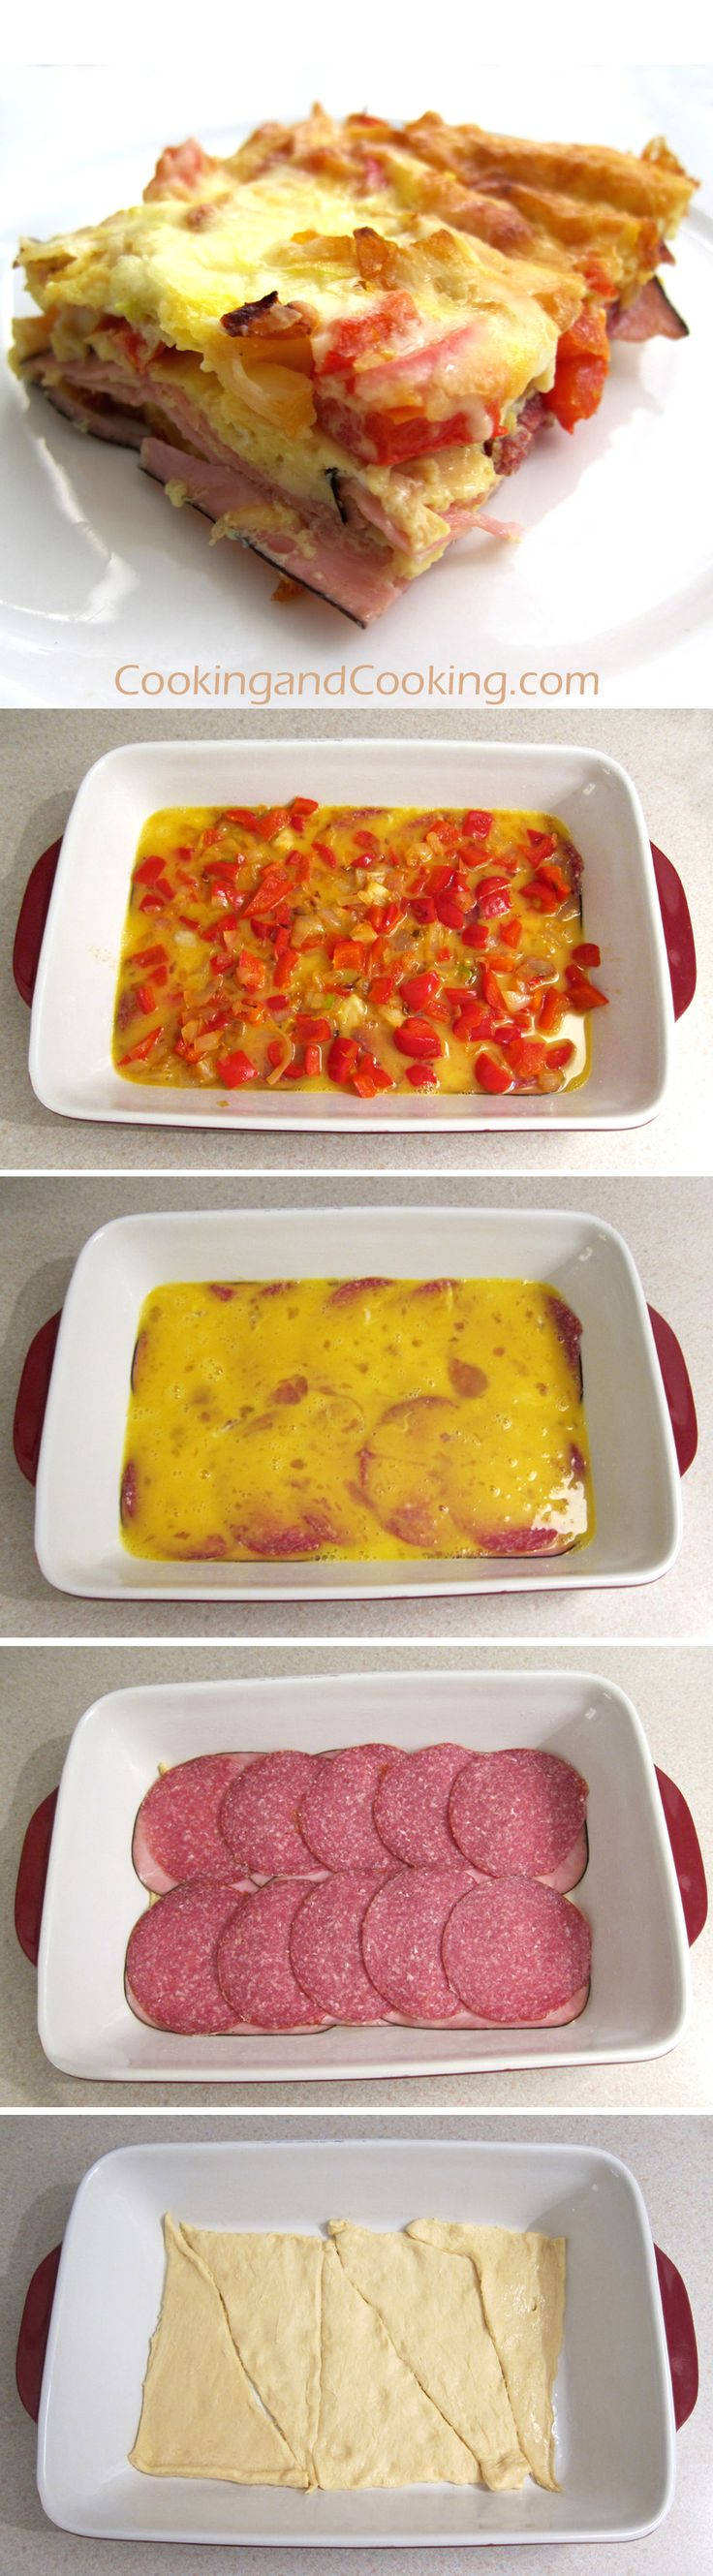 Breakfast Casserole Recipe                                                                                                                                                      More